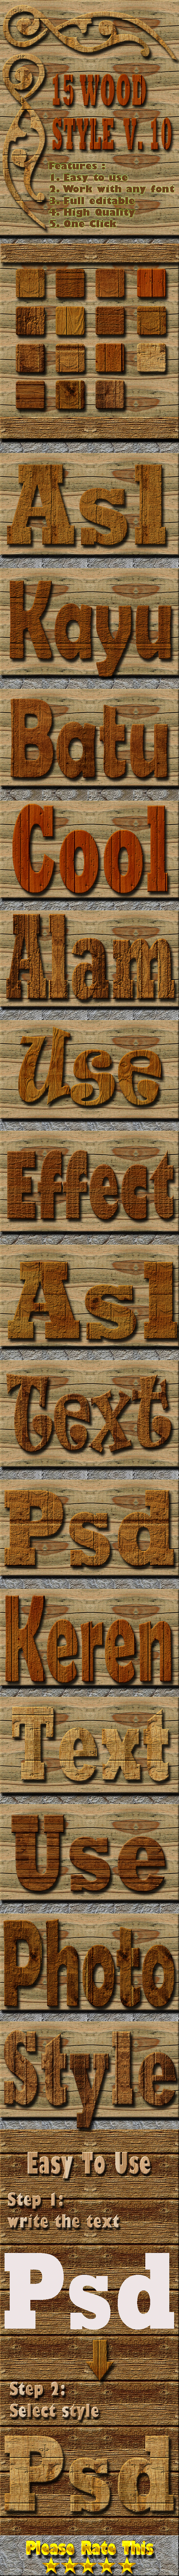 15 Wood Text Effect Style Vol 10 - Styles Photoshop